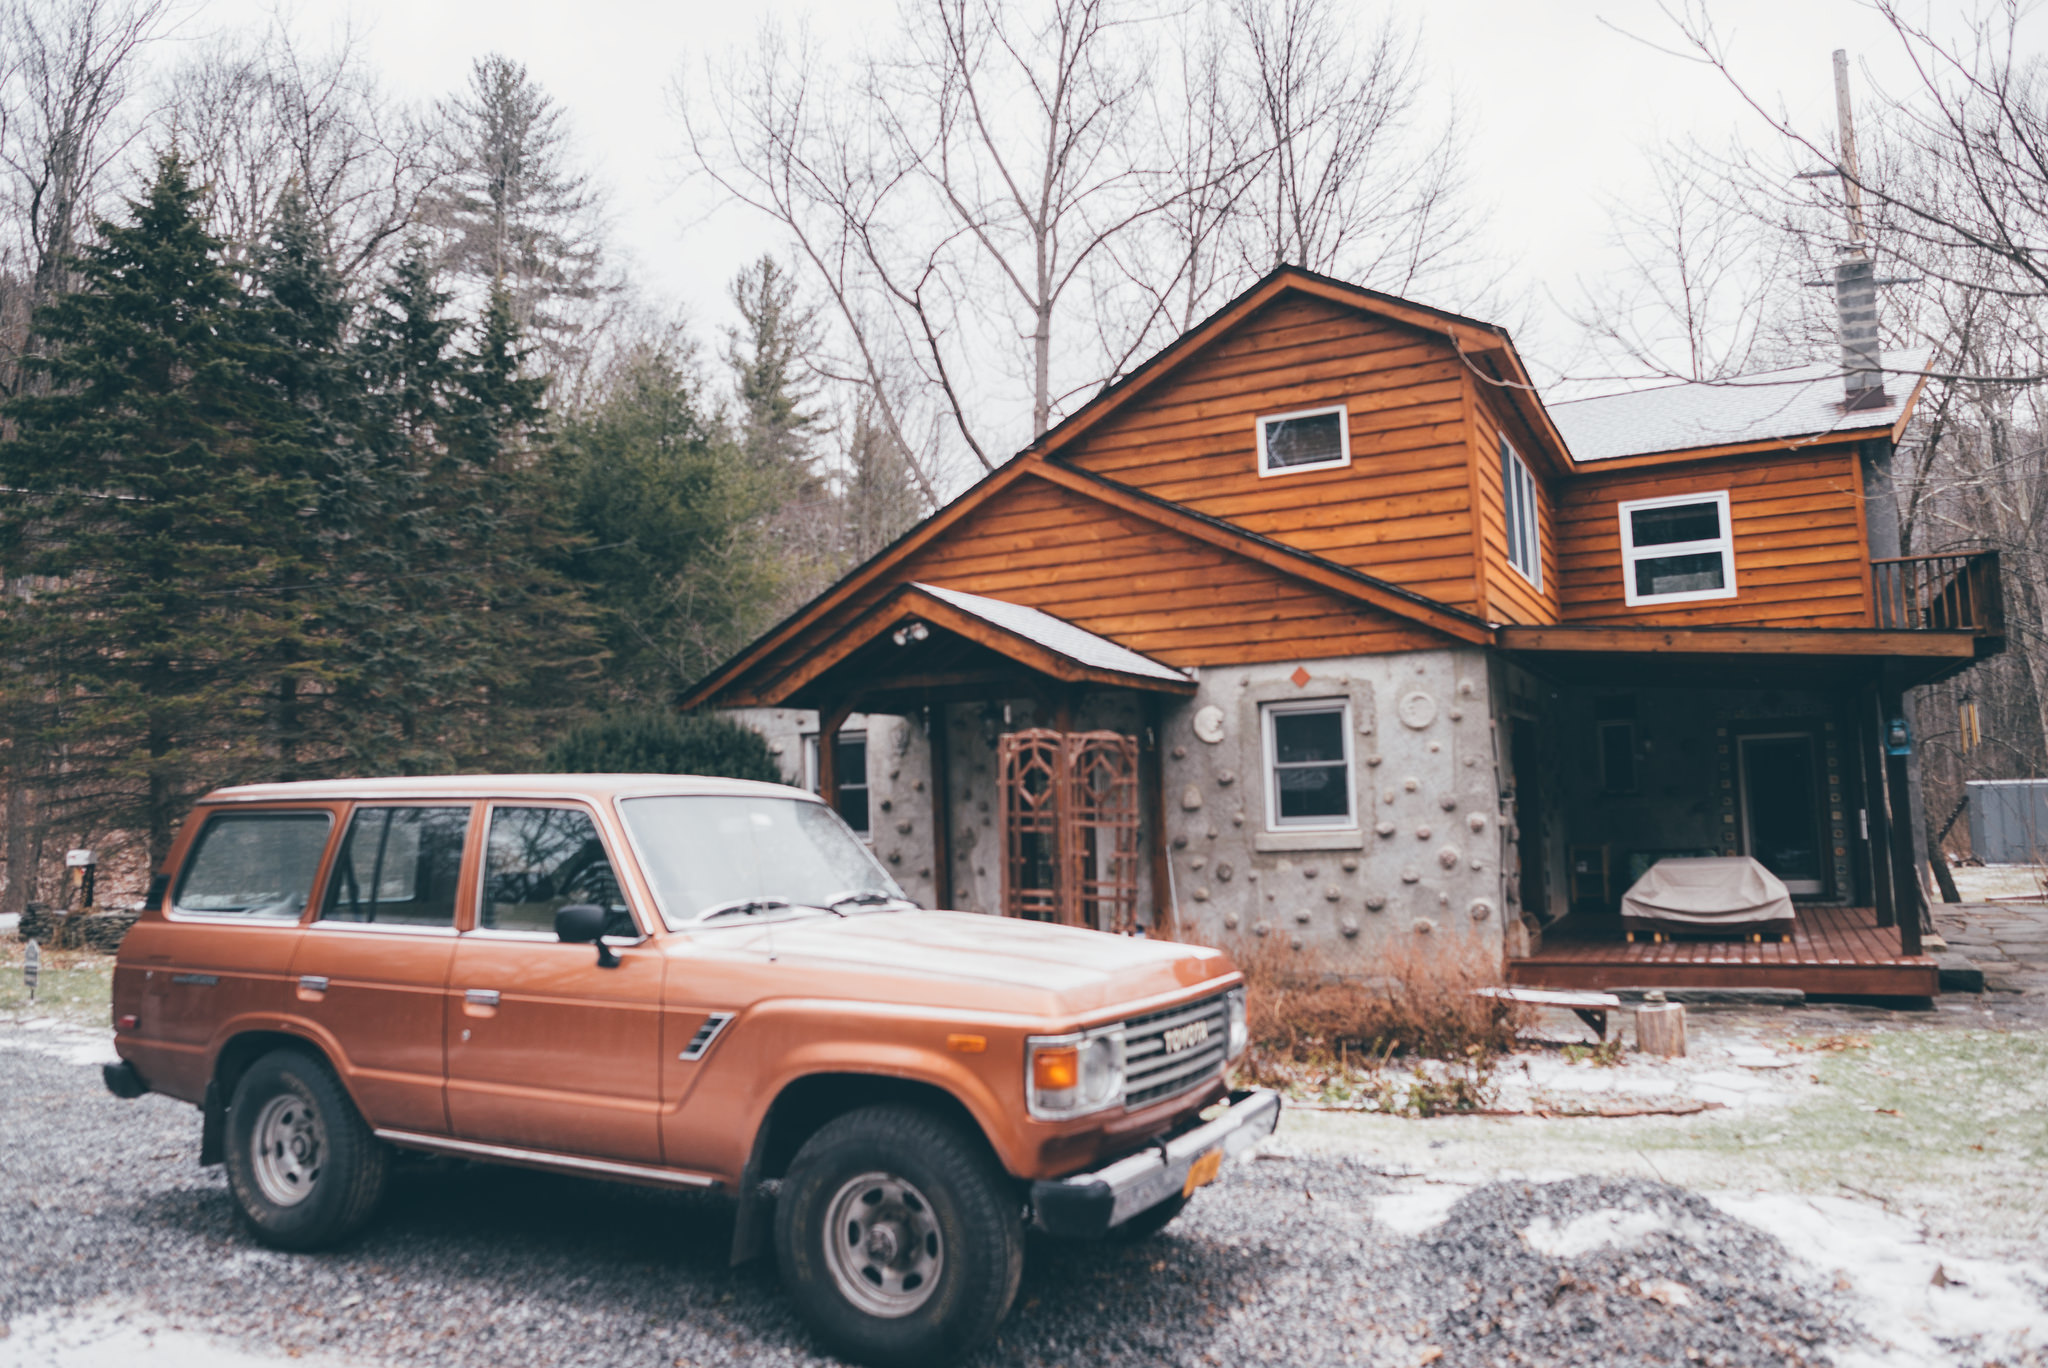 Where to Stay, Catskills Upstate New York Flatrock House